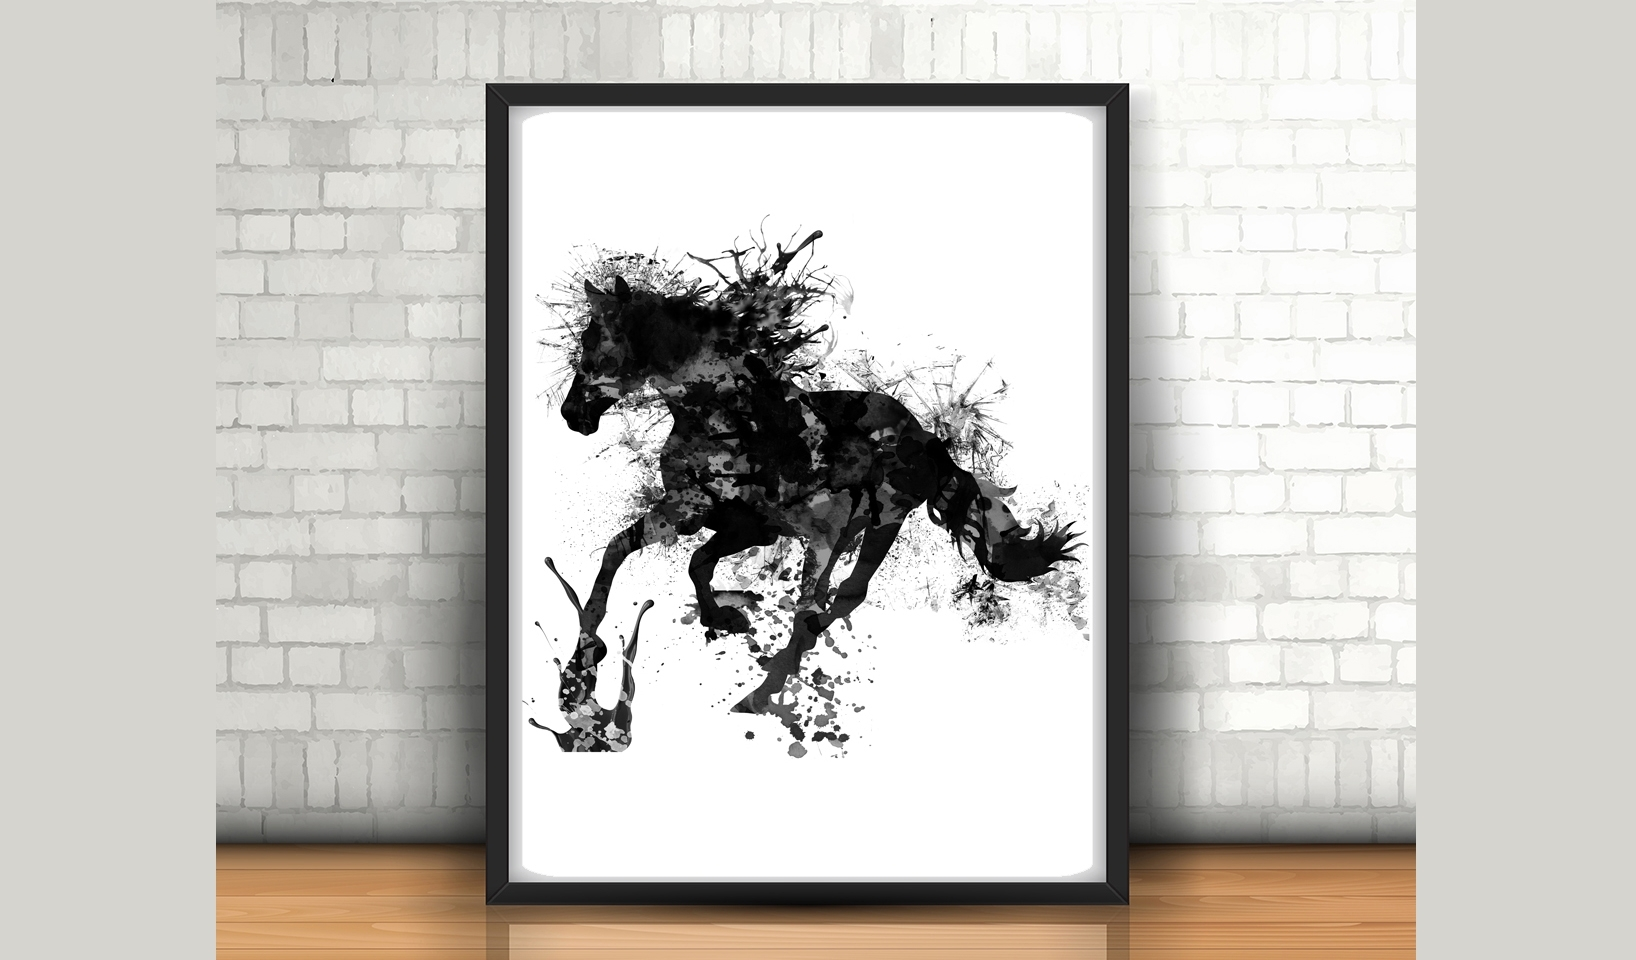 Horse Wall Art – Size 24x36 Inches – H | Design Bundles Inside Most Recently Released Horse Wall Art (View 7 of 15)